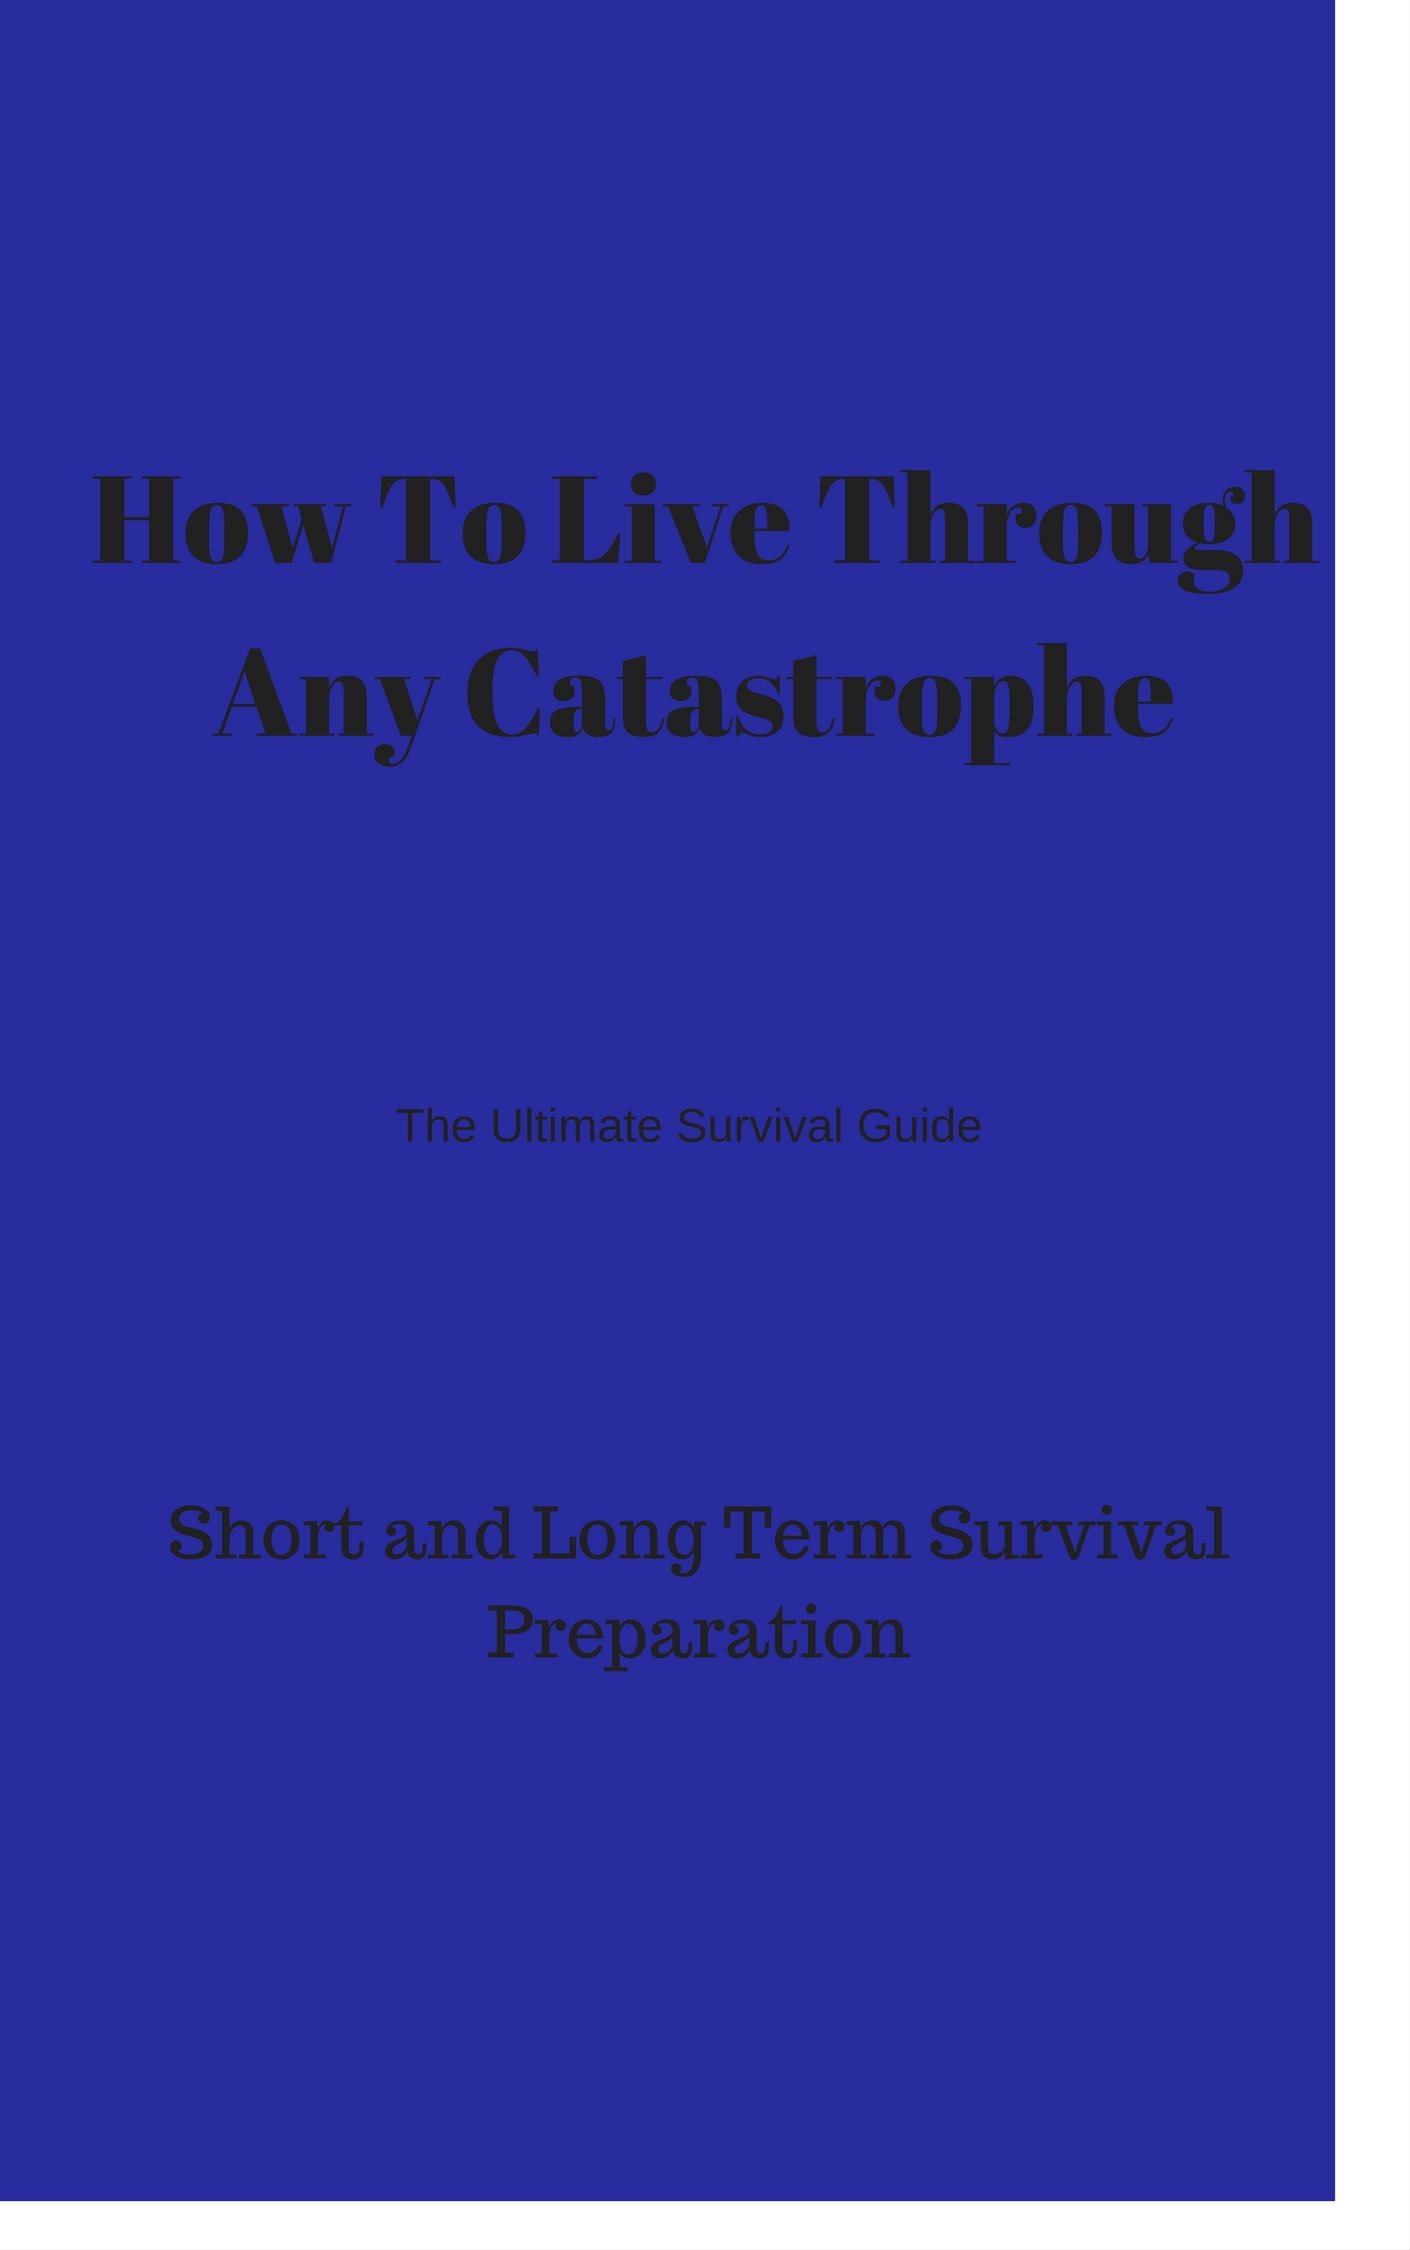 (How To Live Through Any Catastrophe Short and Long Term Survival Preparation The Ultimate Survival Guide (Online Course) [Online Code])